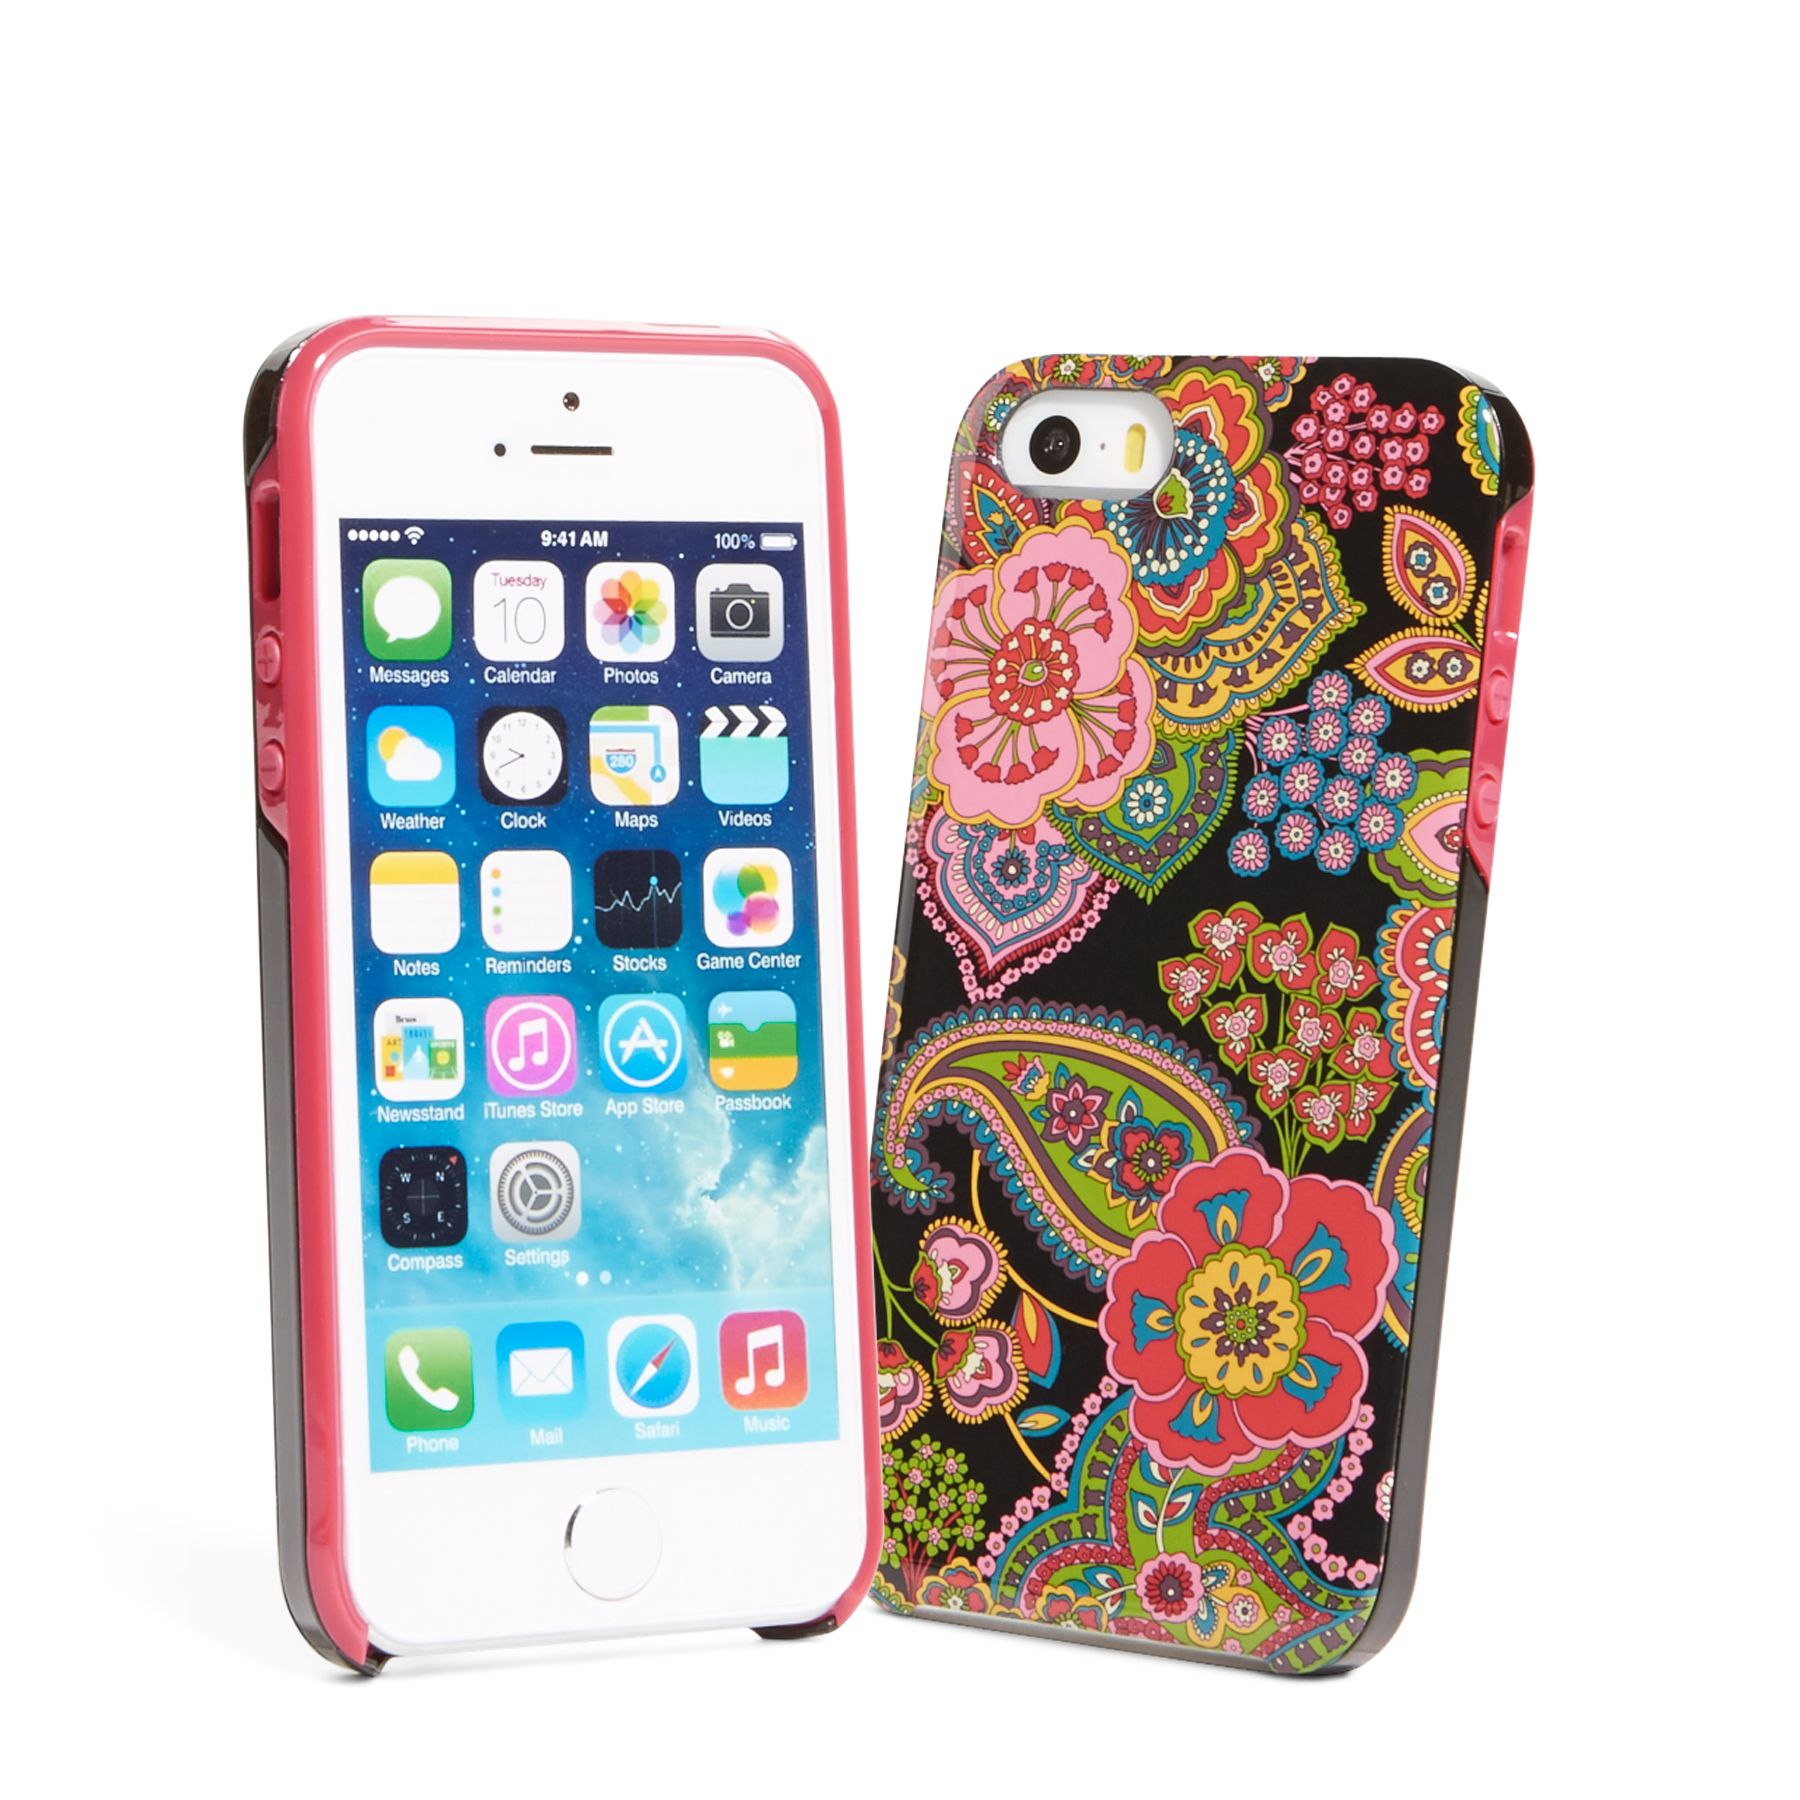 vera bradley iphone 5 case vera bradley hybrid hardshell for iphone 5 ebay 18147